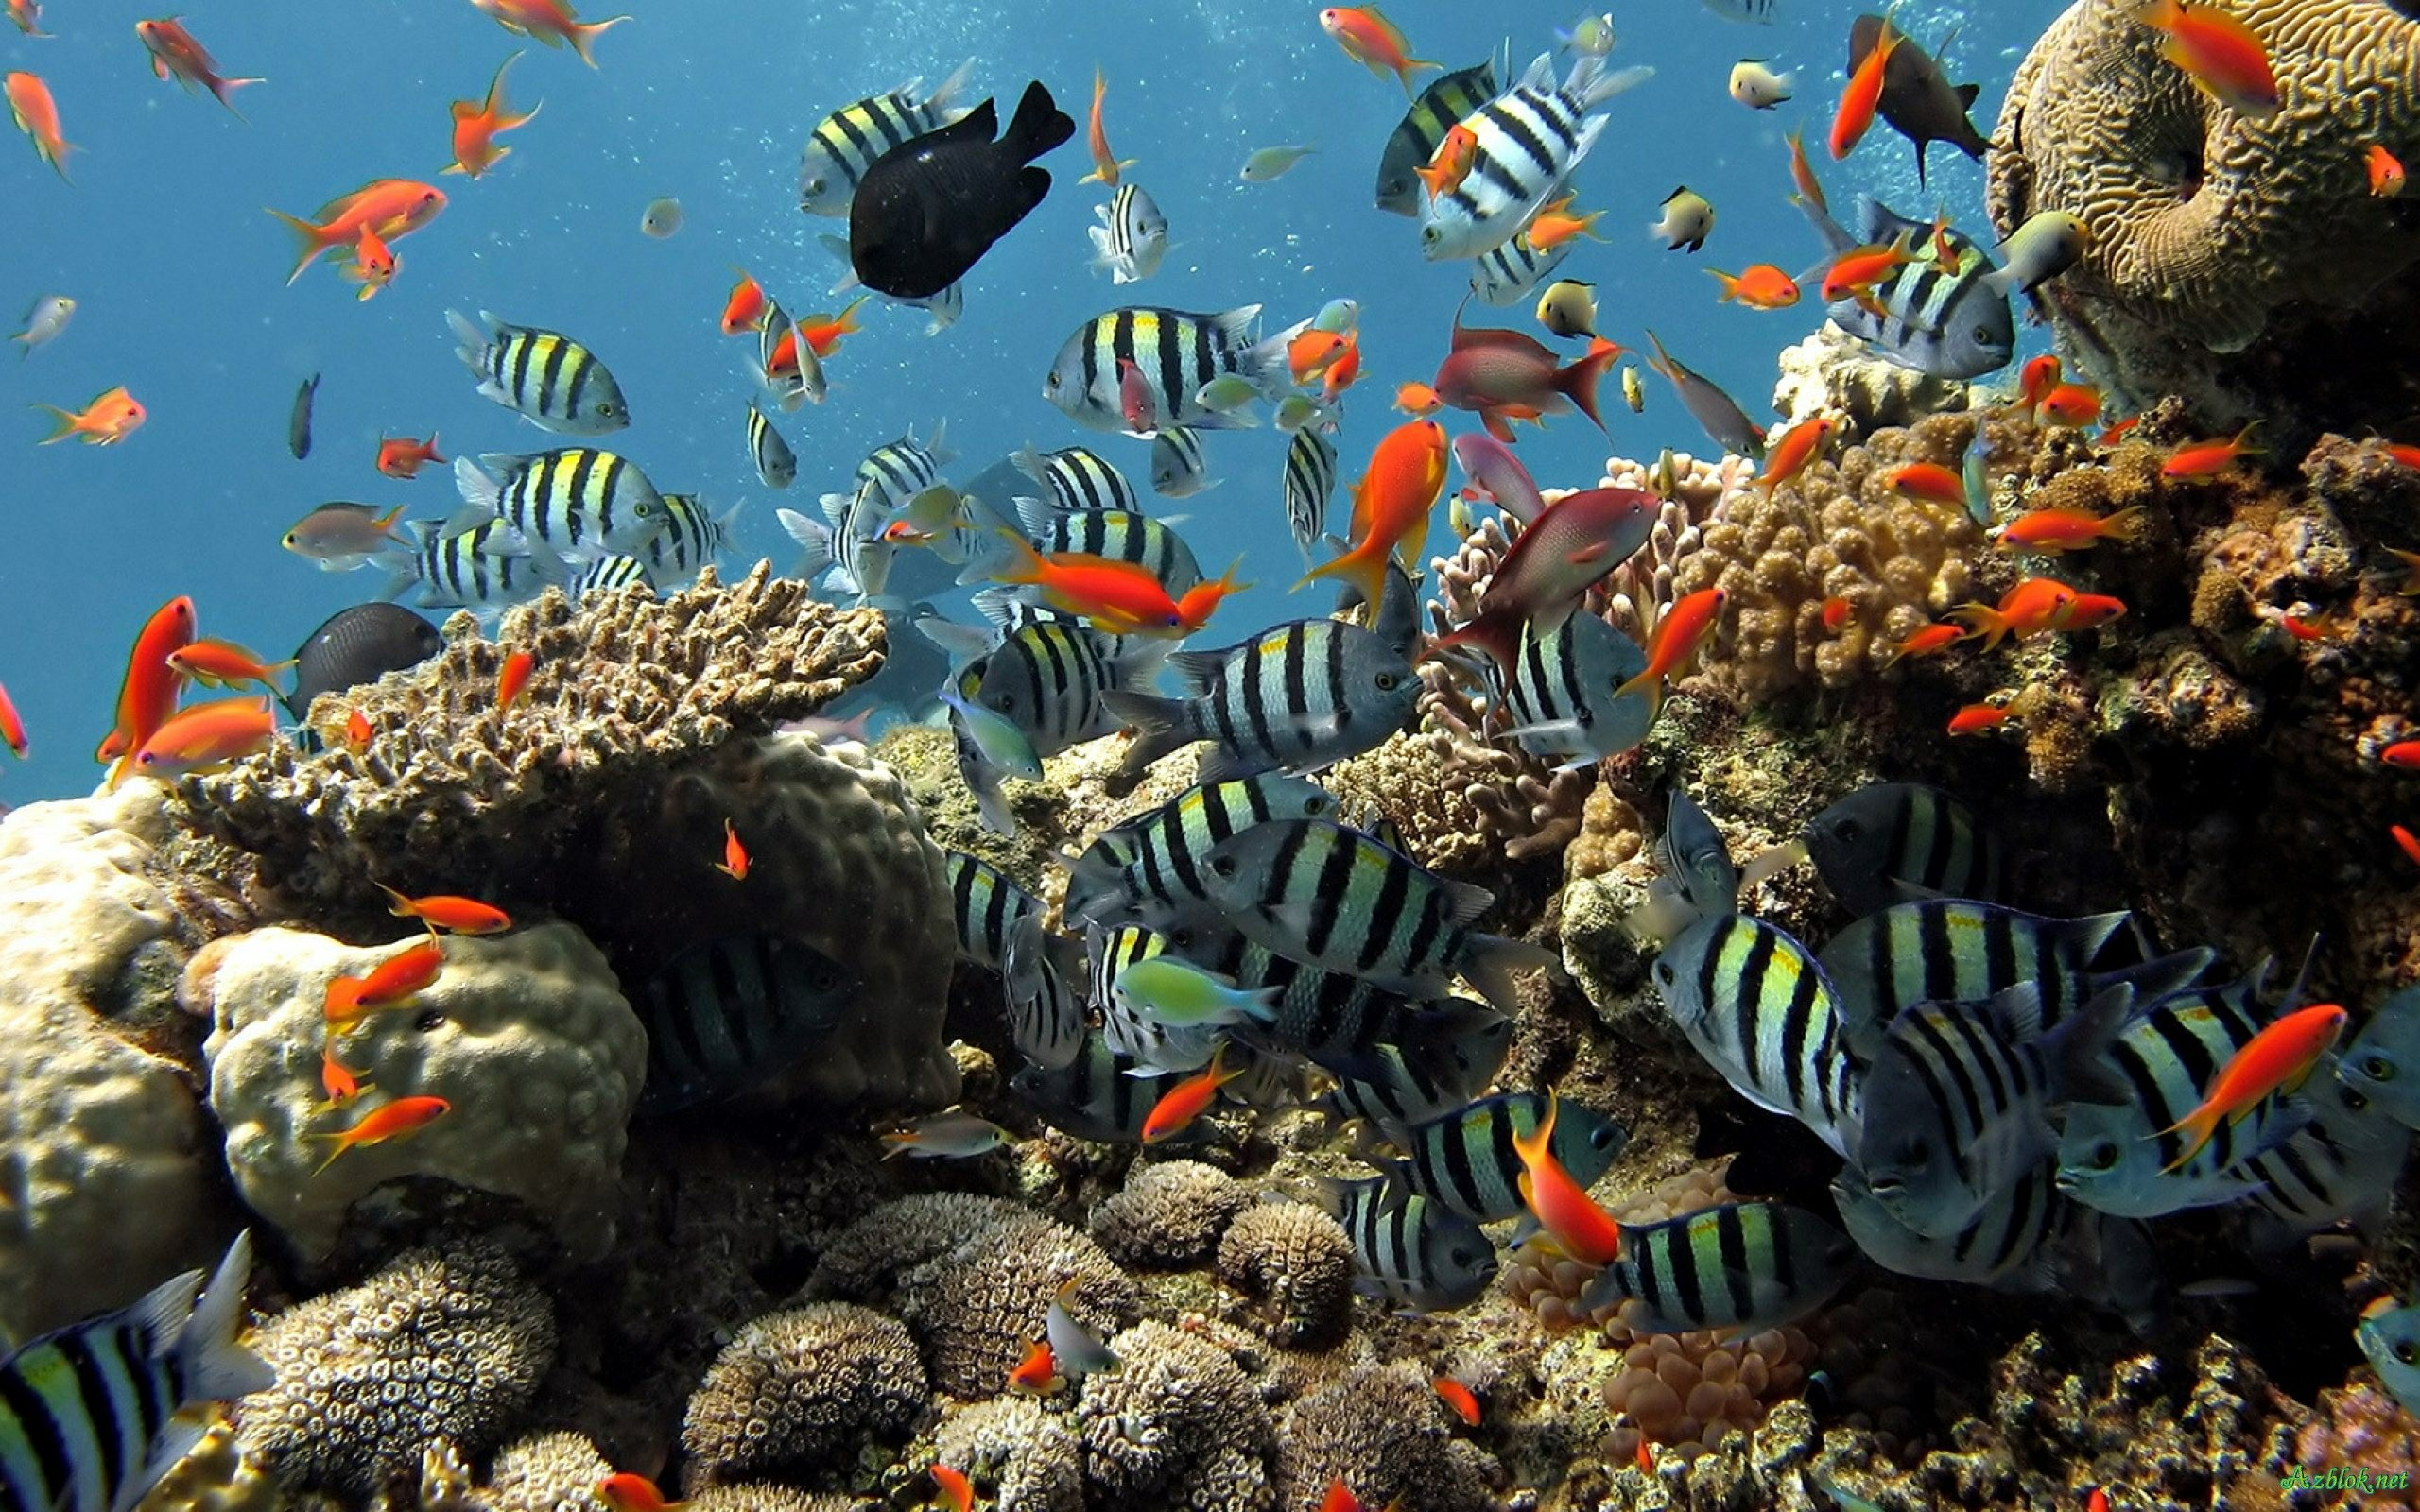 Live Hd Wallpaper Aquarium 3d Desktop Aquarium 3d Mac Live